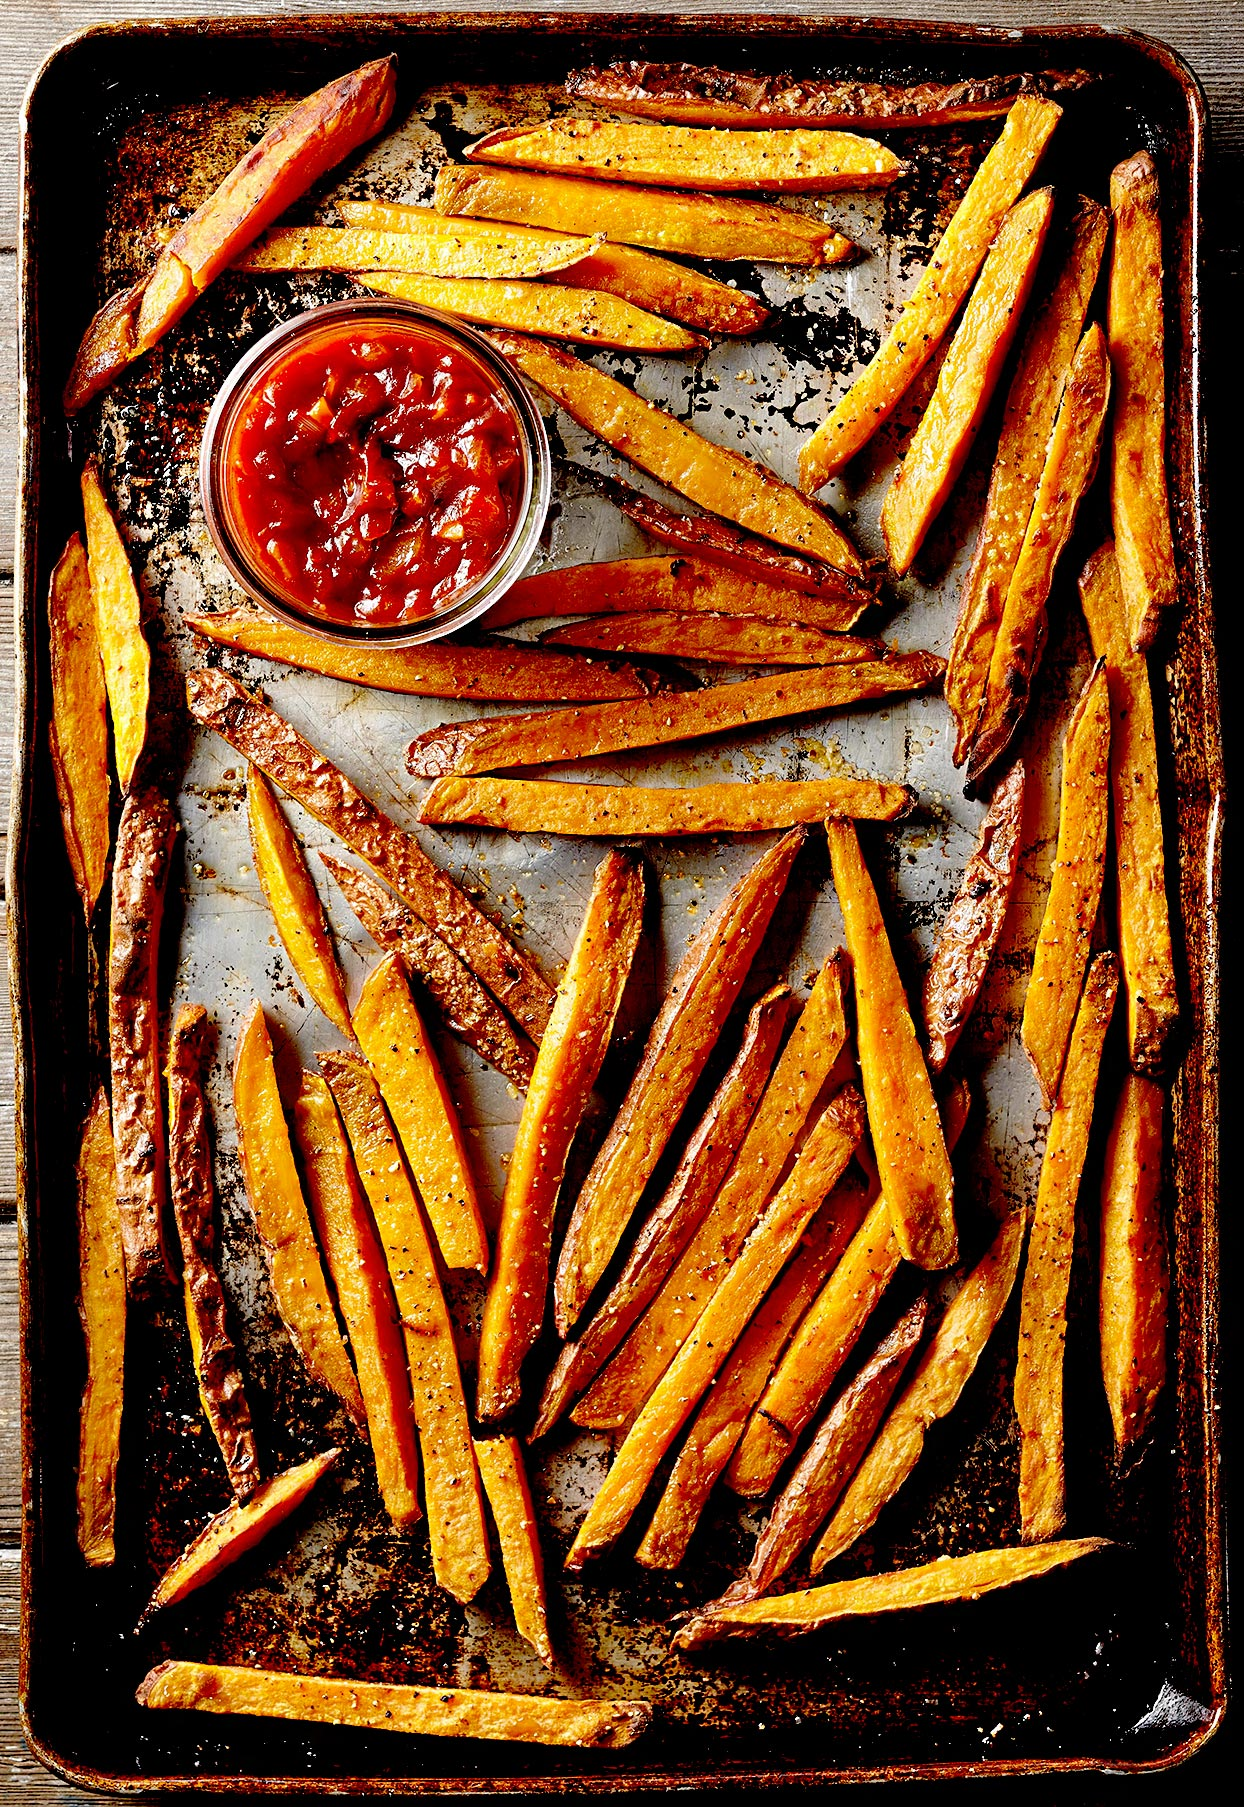 Sweet Potato Fries with Roasted Garlic Ketchup